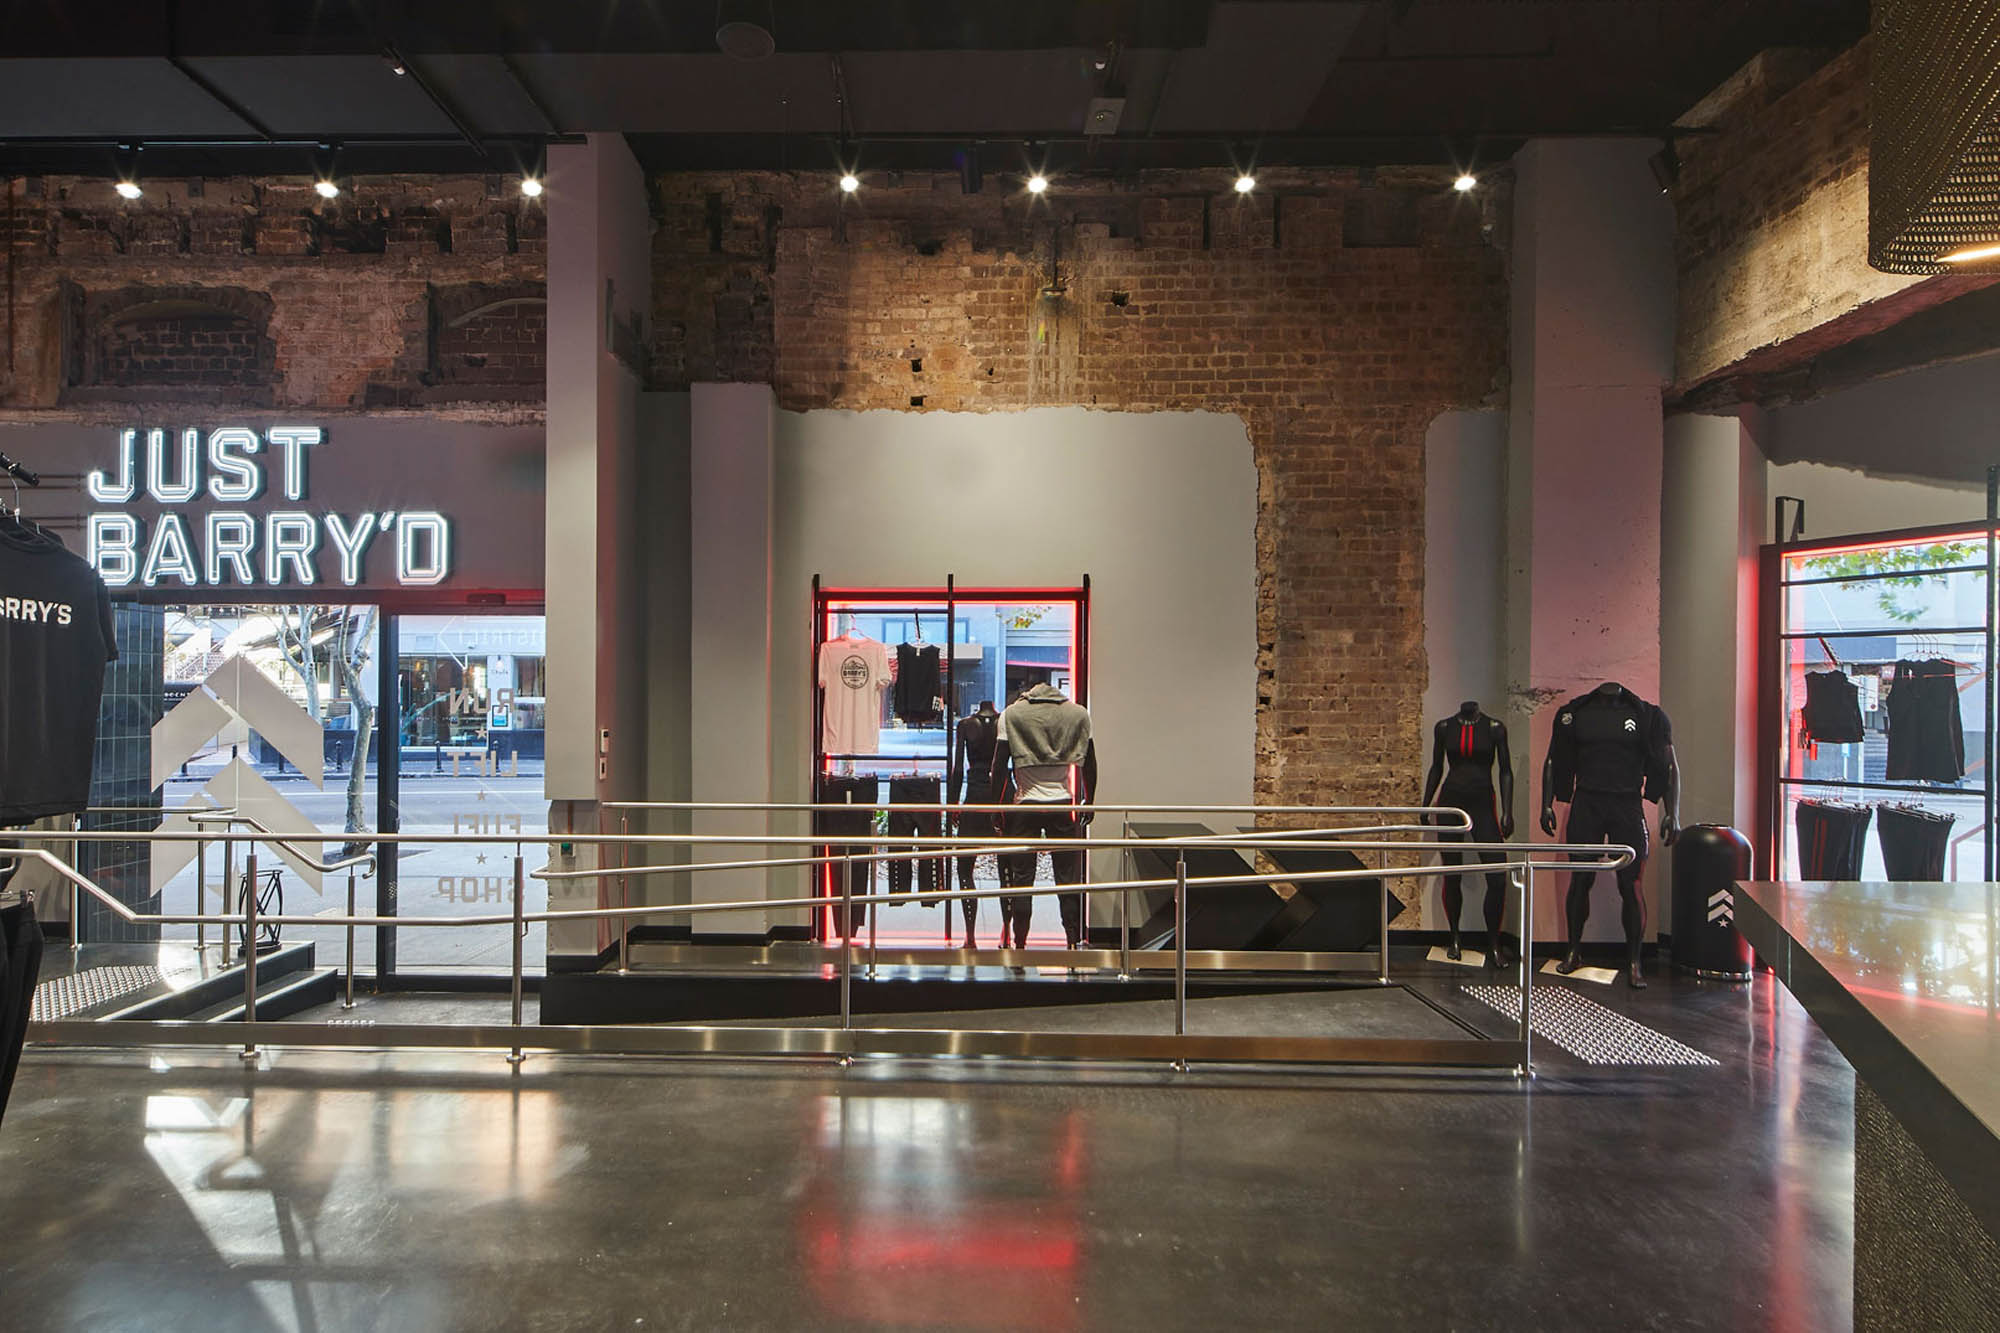 barrys bootcamp kings cross gym fitness construction fitout design signage raw brick ramp retail shopfront